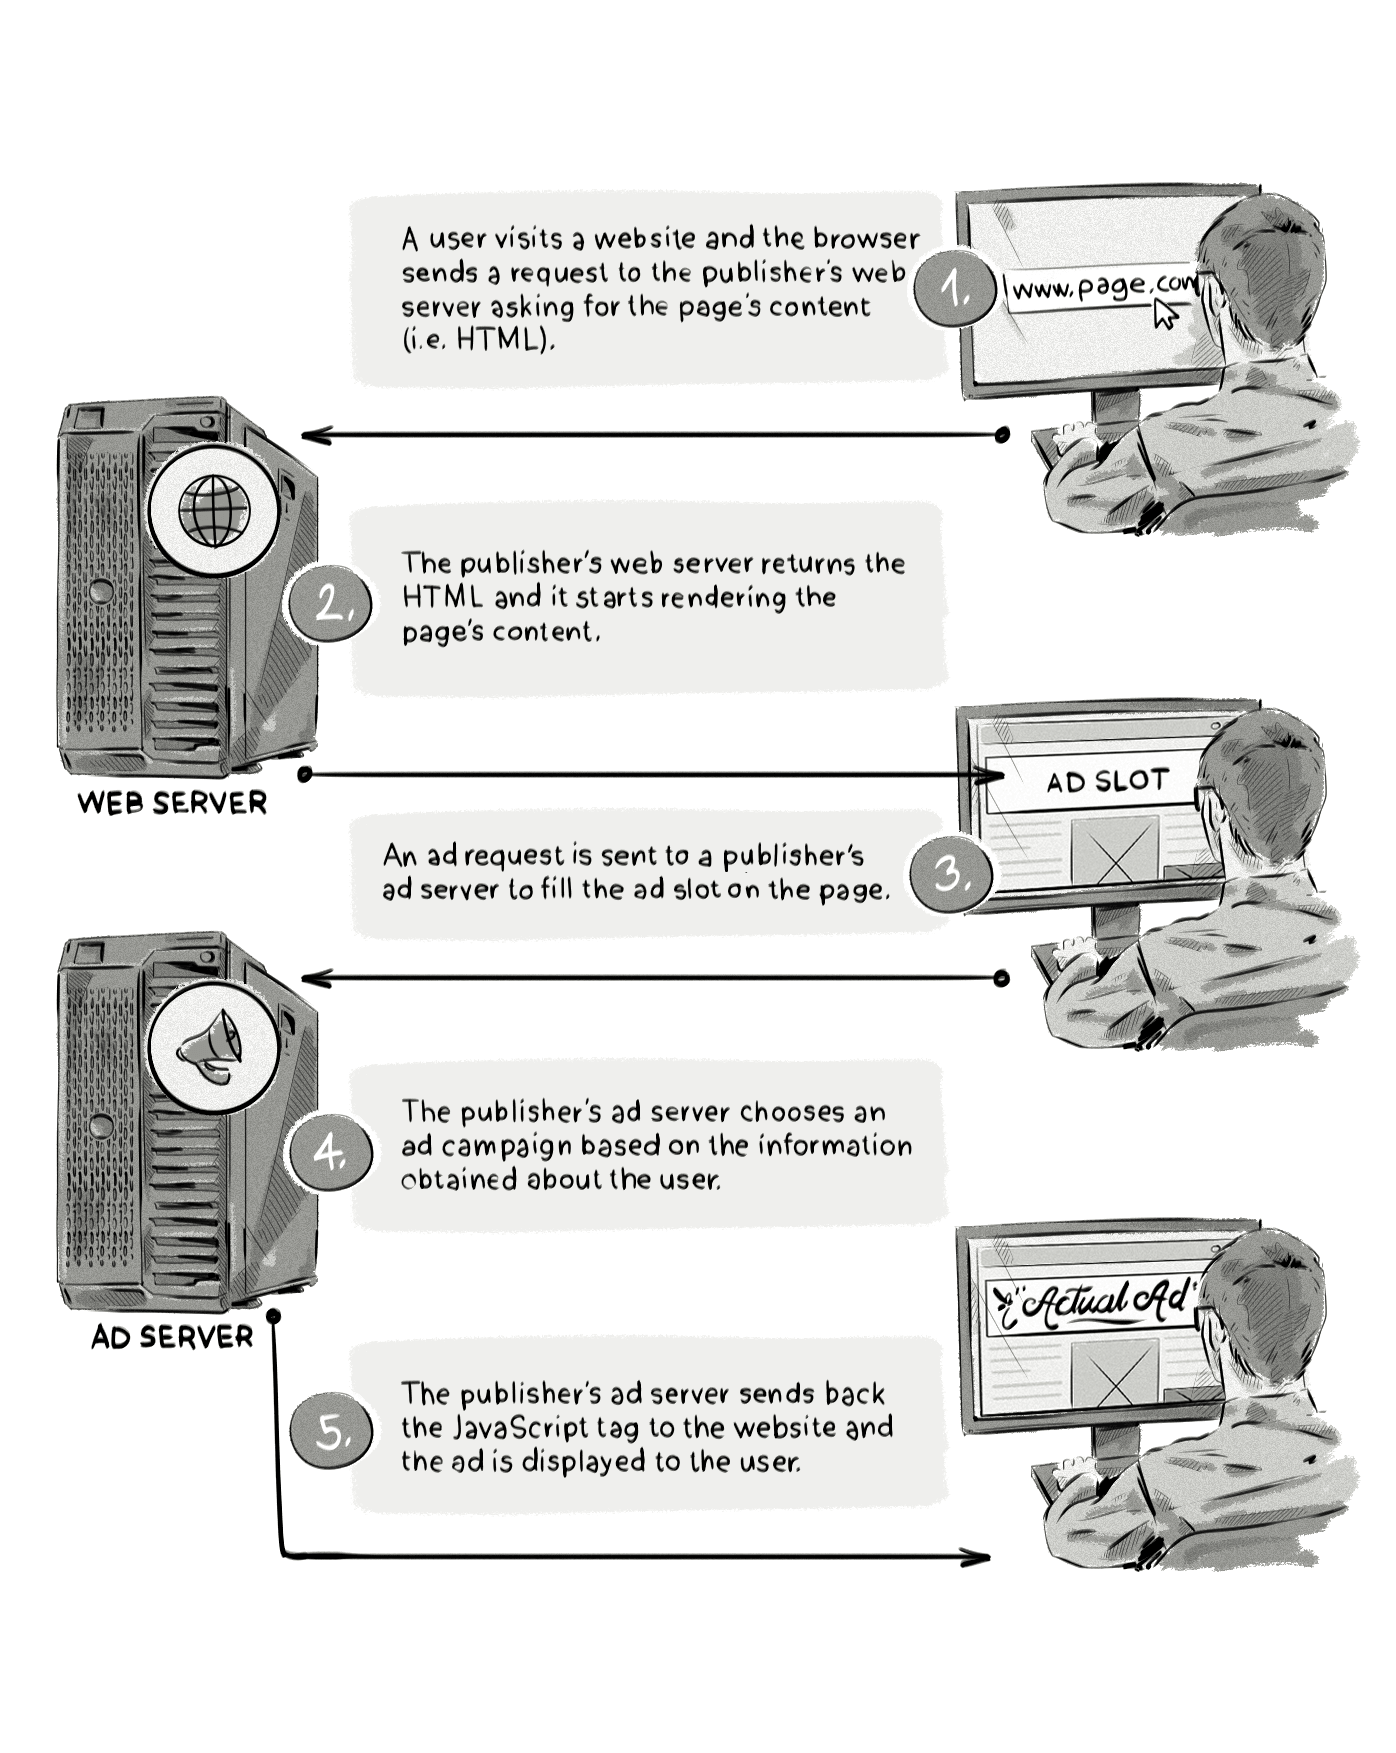 How first-party ad servers work